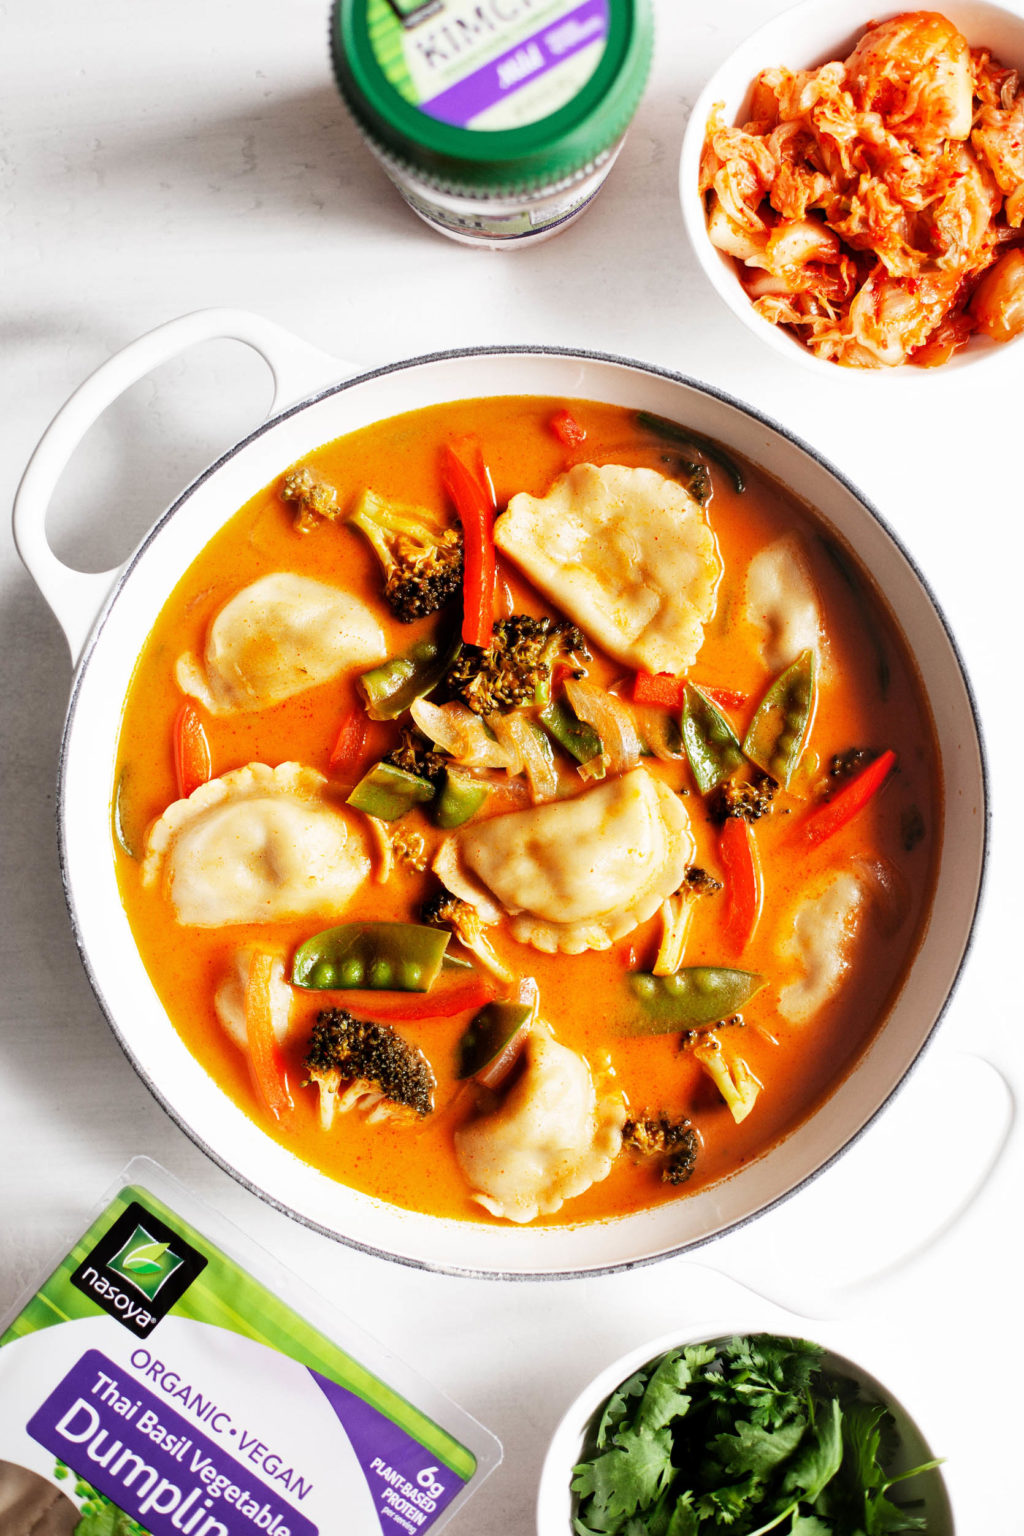 A bowl of red curry dumpling soup, made with the Nasoya brand kimchi as an accompaniment.